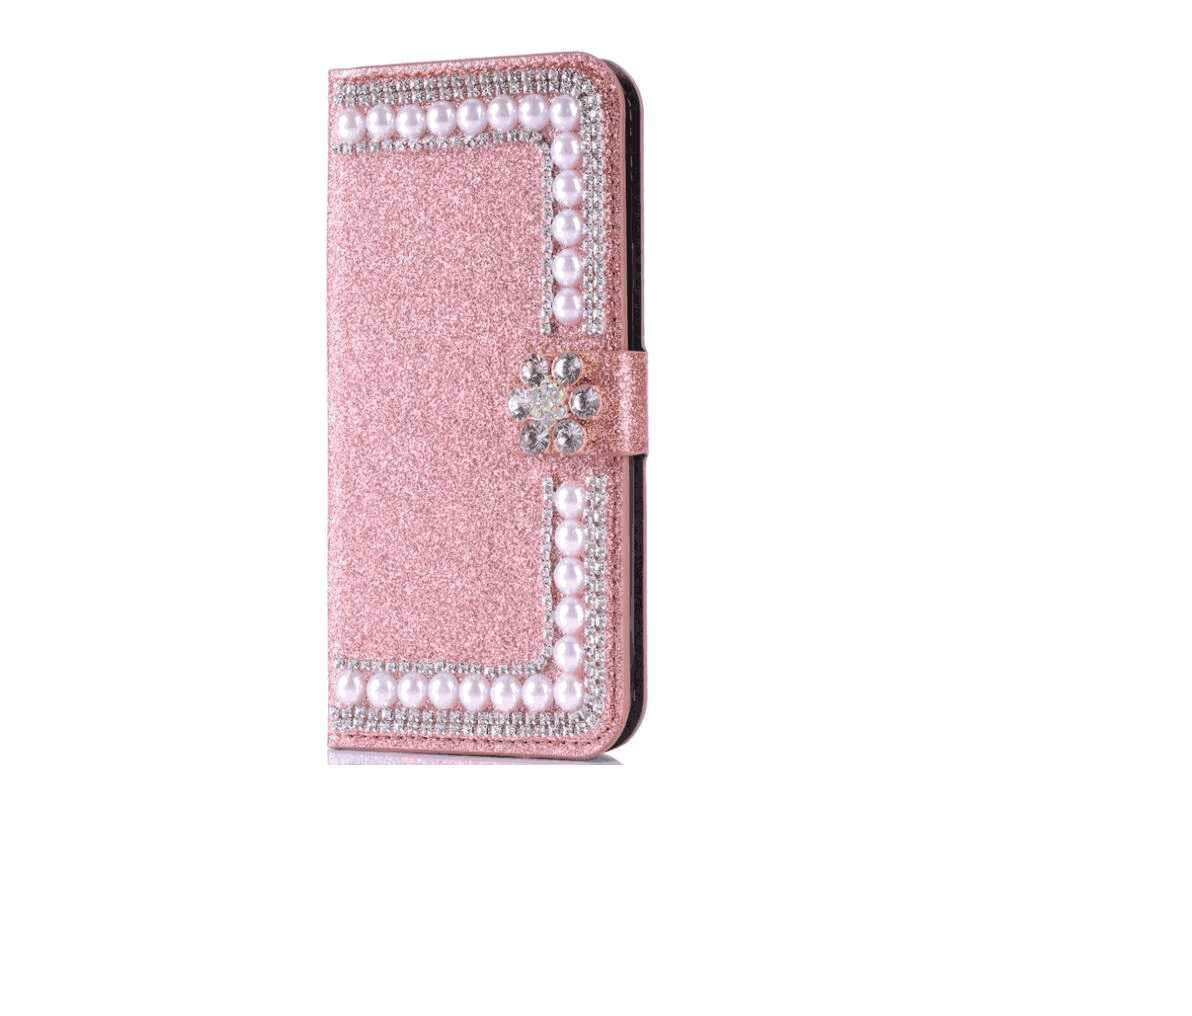 Cover for Leather Wallet Cover Extra-Durable Business Card Holders Kickstand Flip Cover iPhone 11 Pro Flip Case